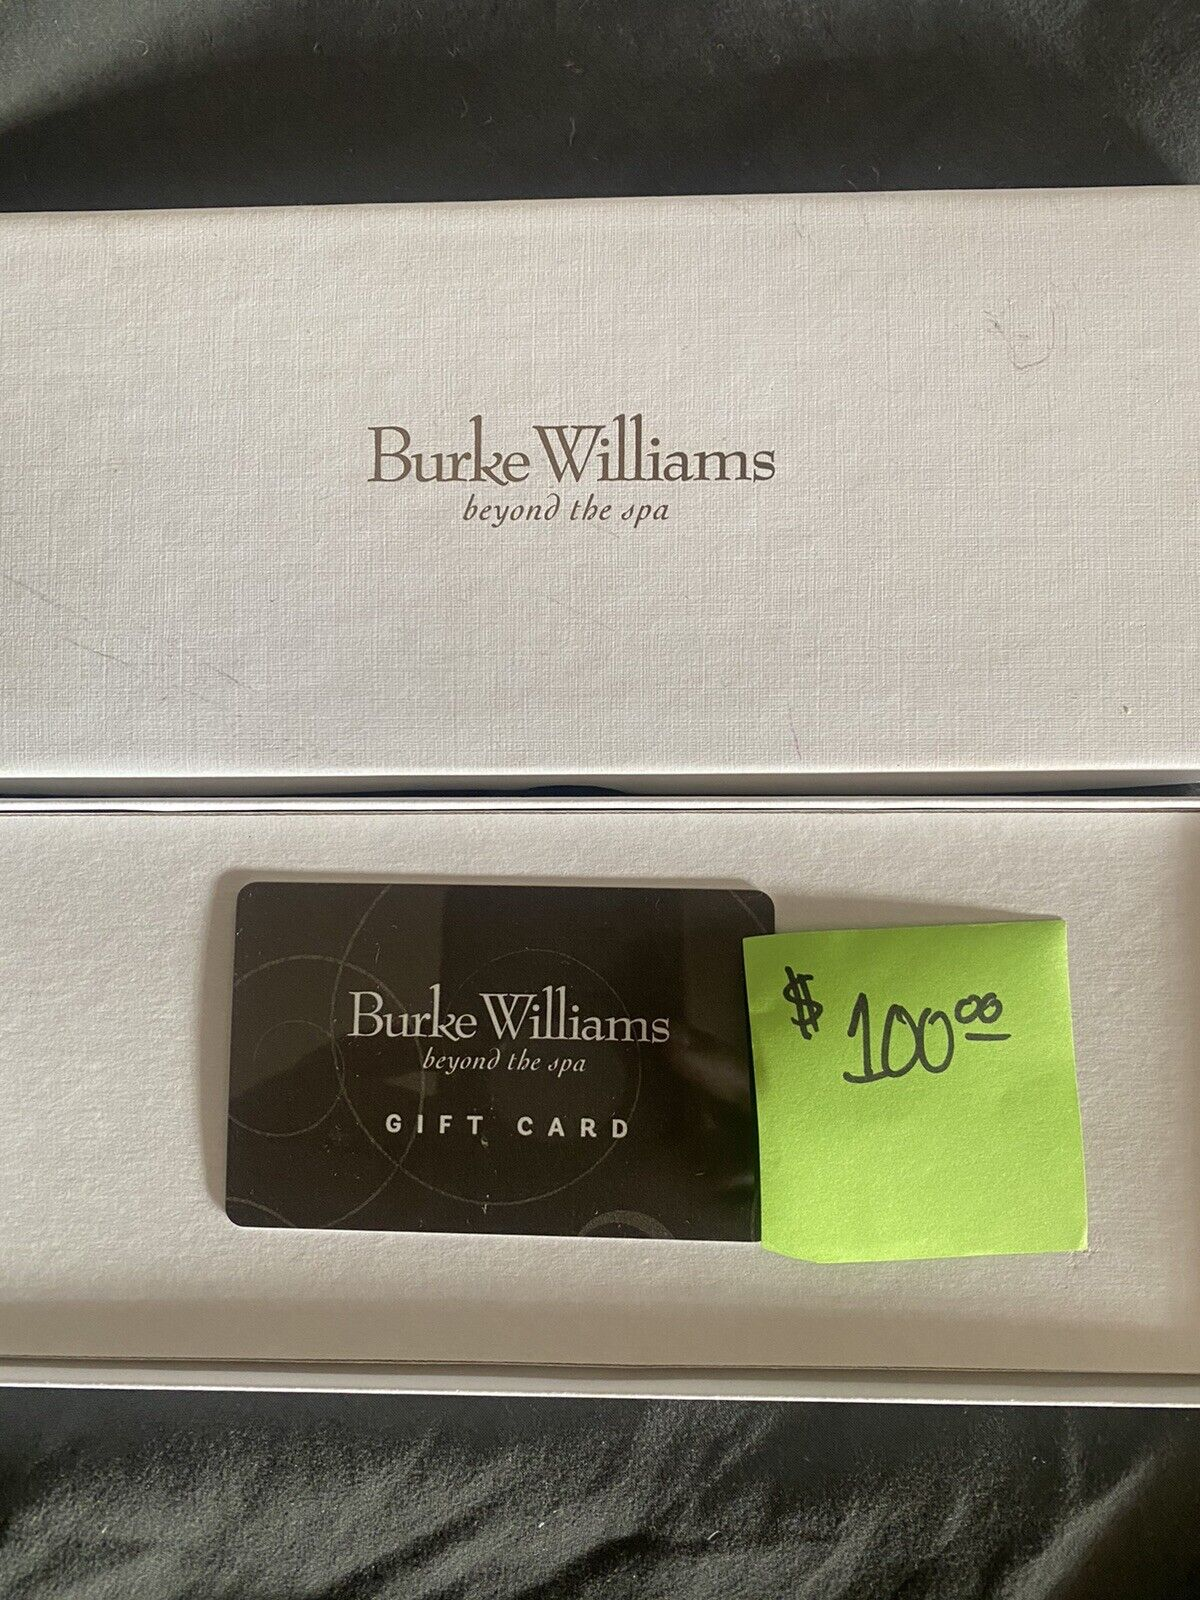 Burke Williams Beyond The Spa Gift Card 100 Value - $68.00